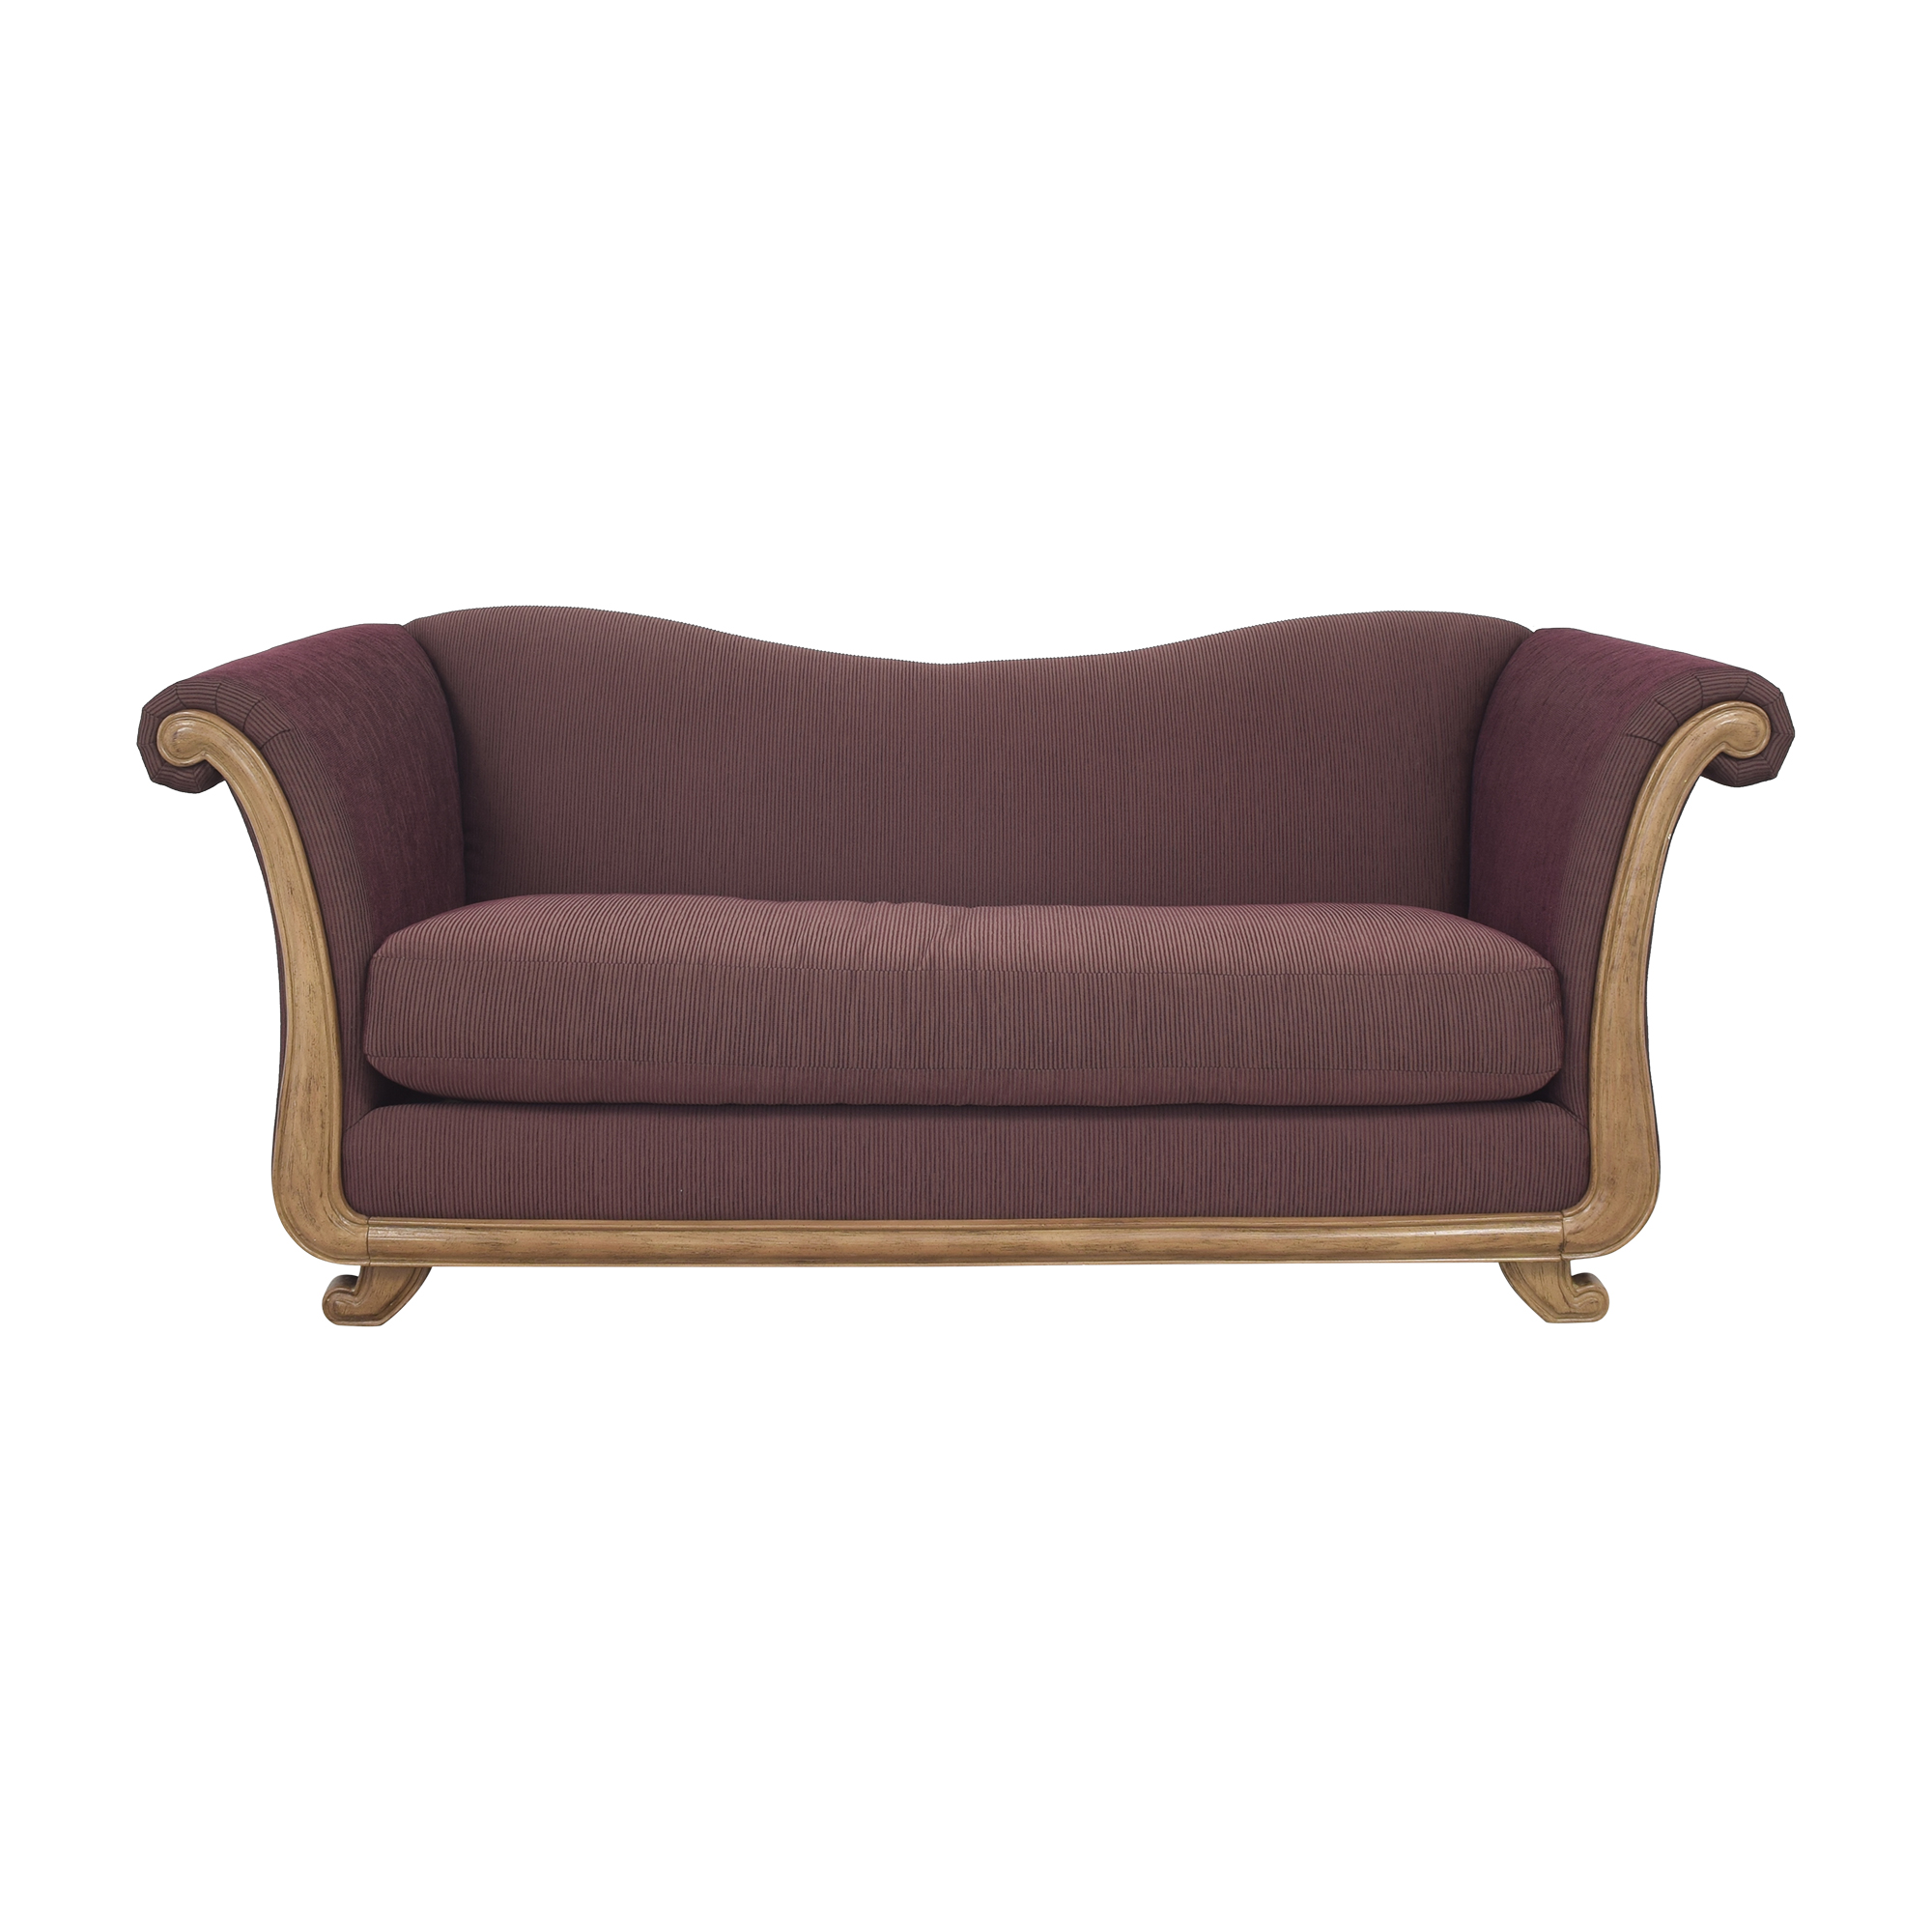 Bernhardt Bucket Sofa sale